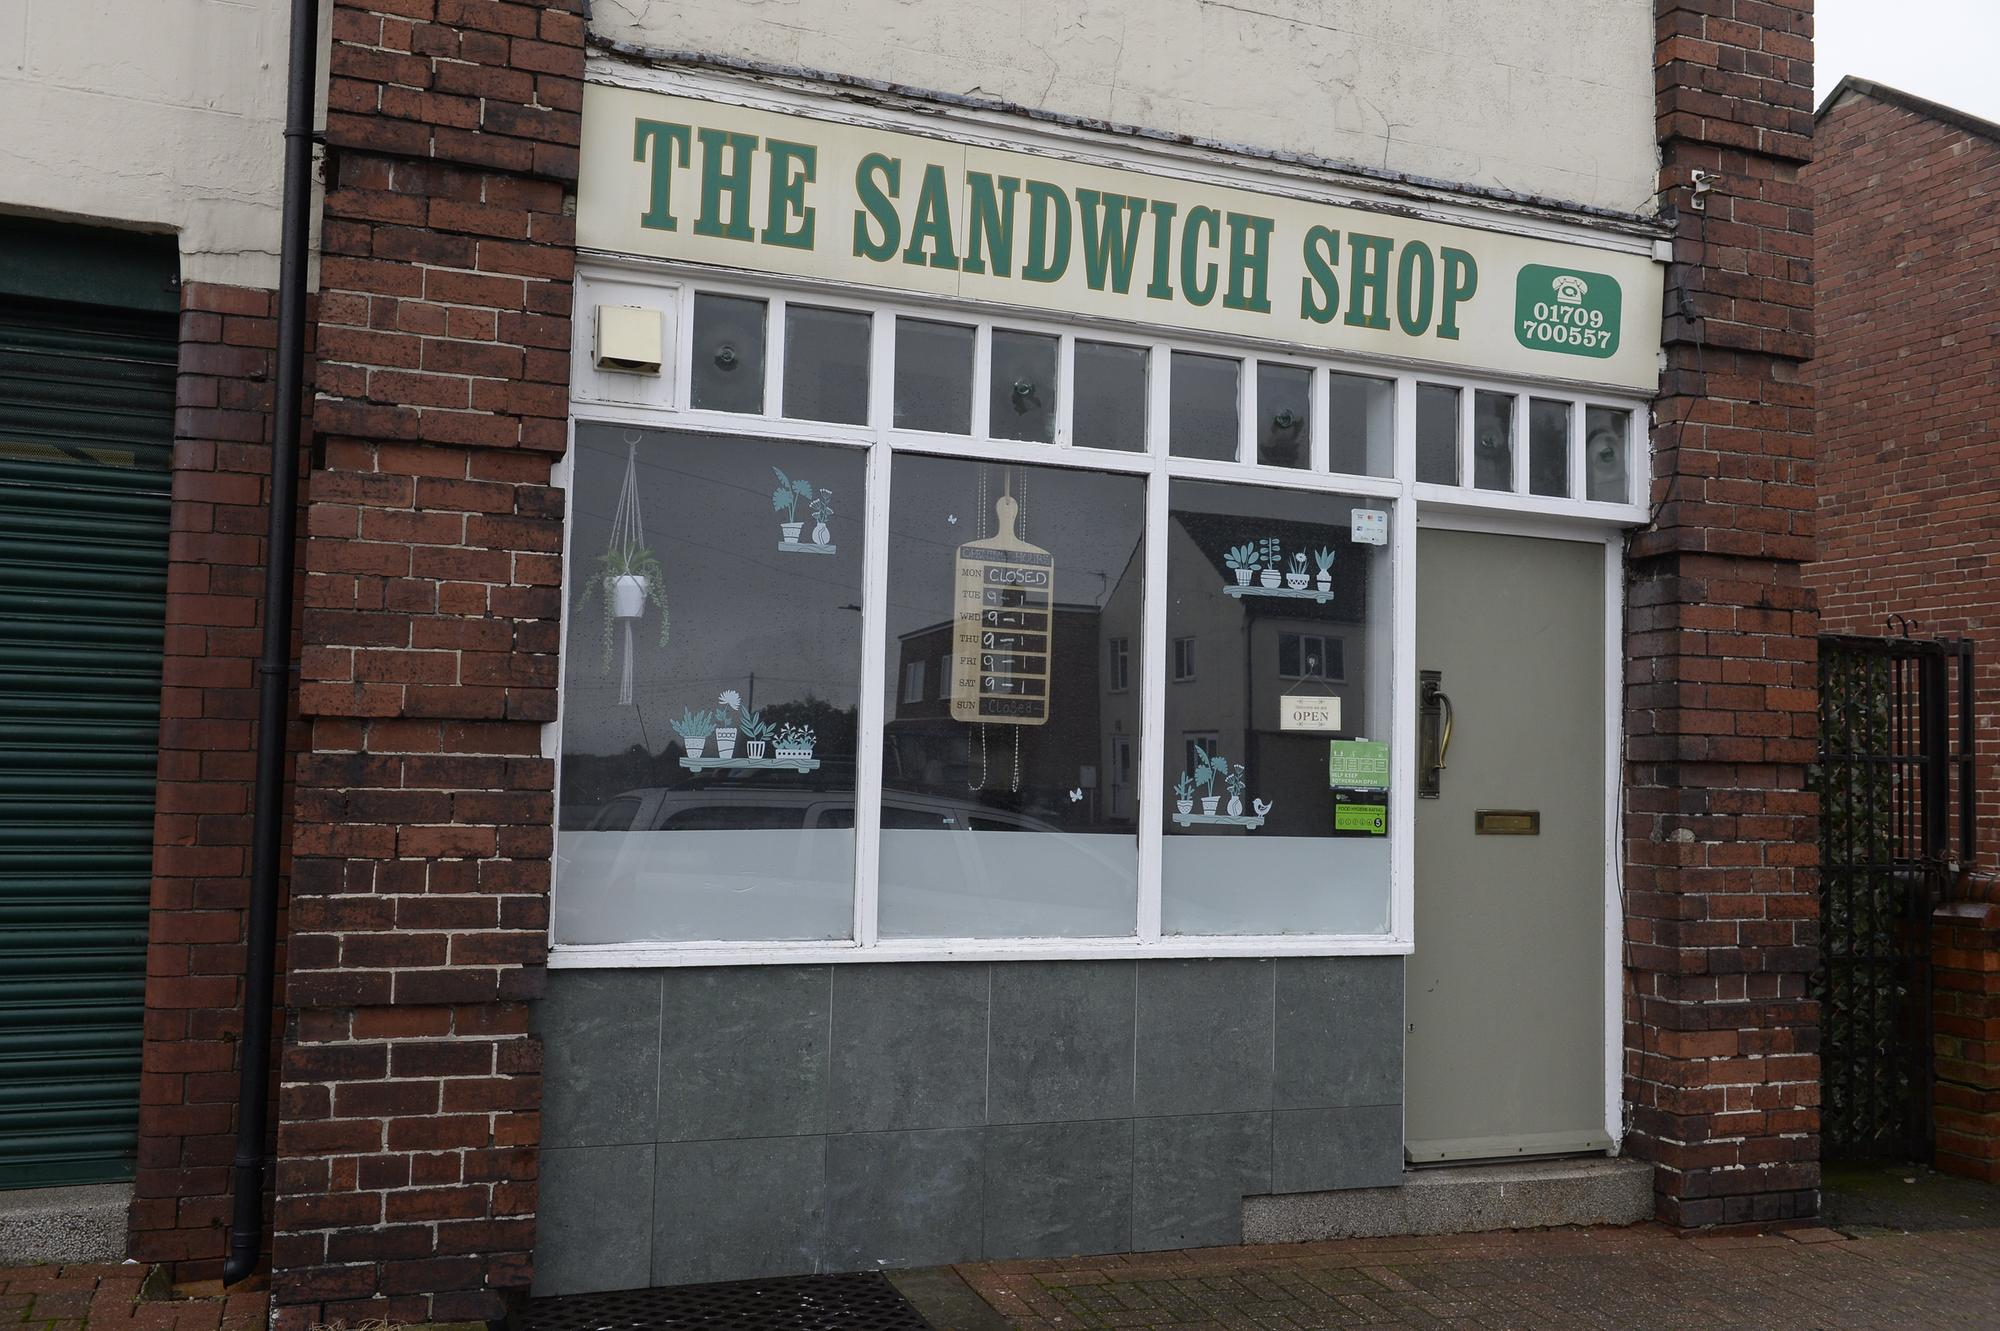 South Yorkshire shop owner offers free half term sandwiches to youngsters on free school meals